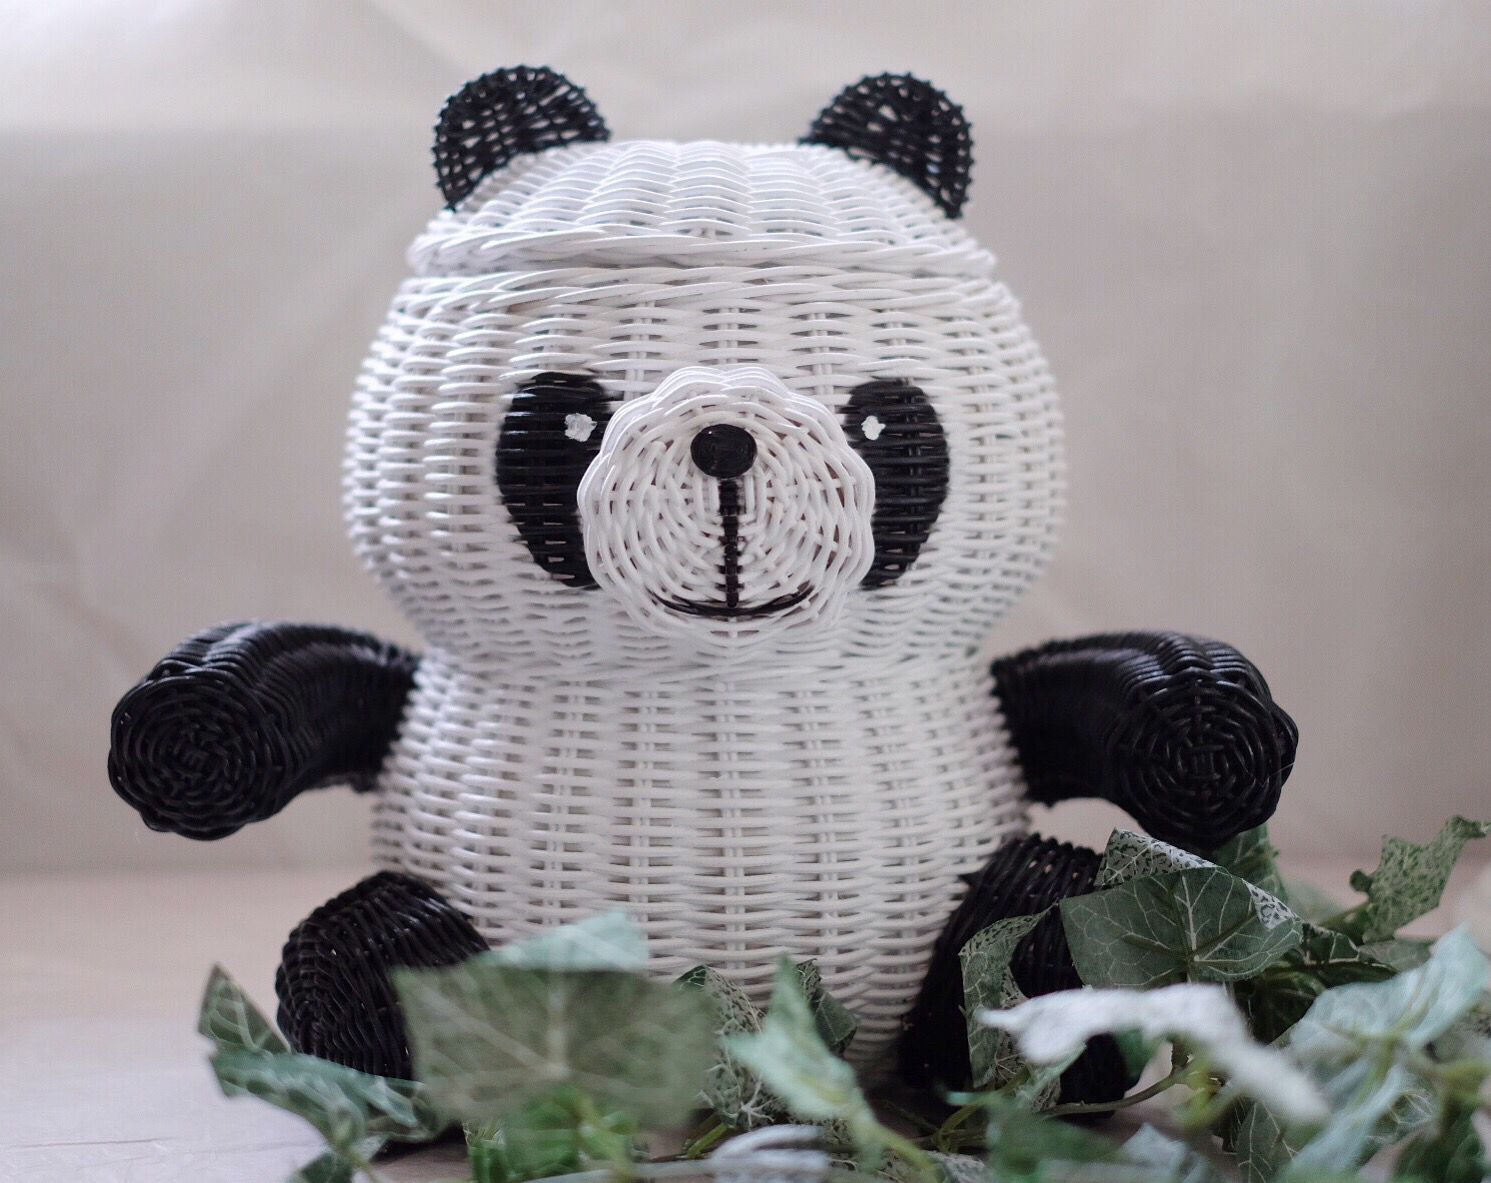 panda rattan basket i baskets pinterest flechten korbflechten und papier basteln. Black Bedroom Furniture Sets. Home Design Ideas